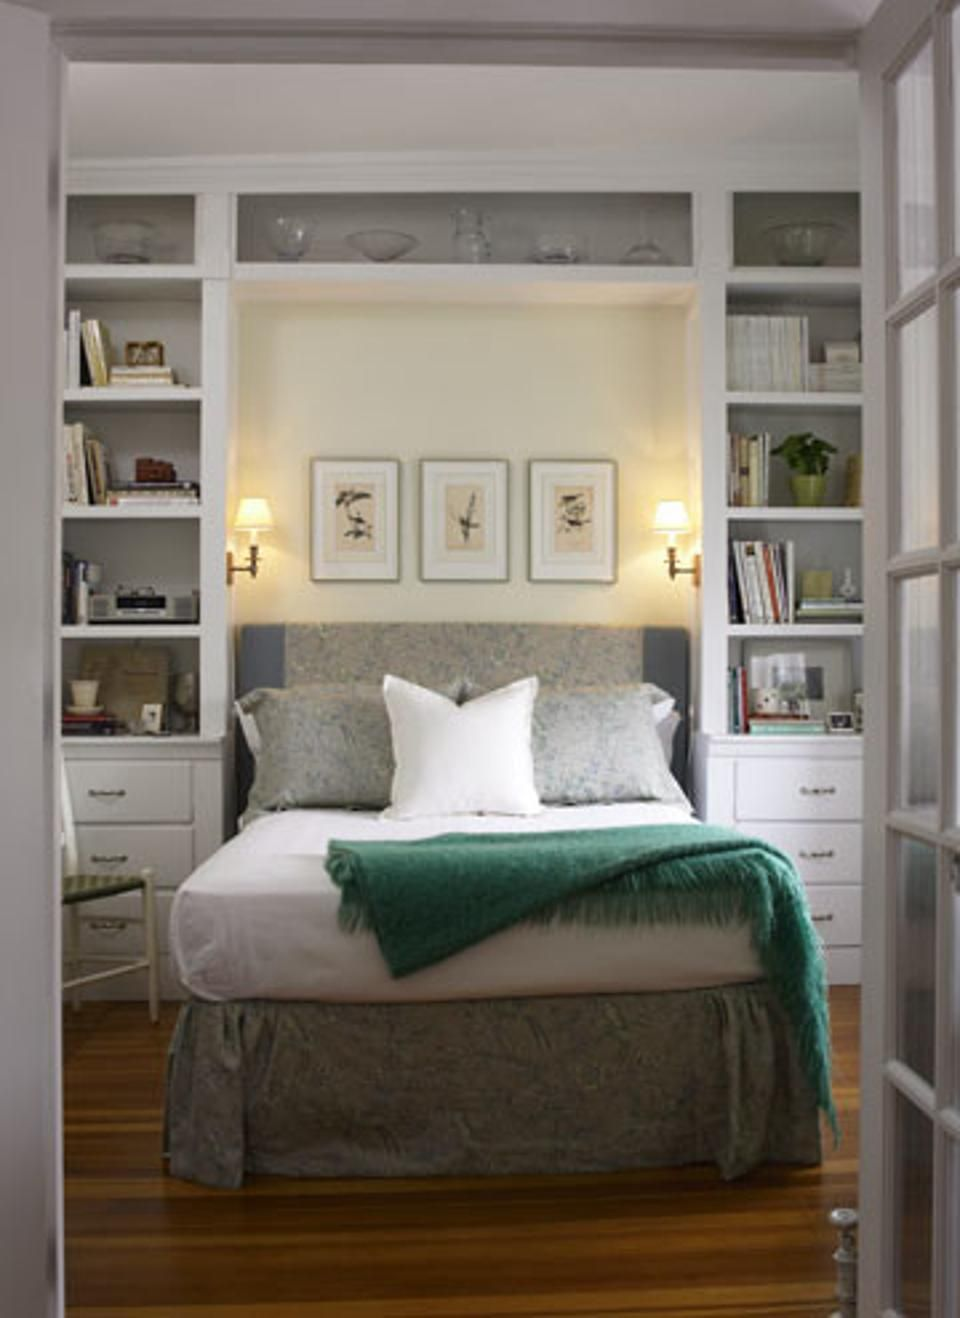 10 Tips To Make A Small Bedroom Look Great Traditional Bedroom Small Bedroom Remodel Bedroom